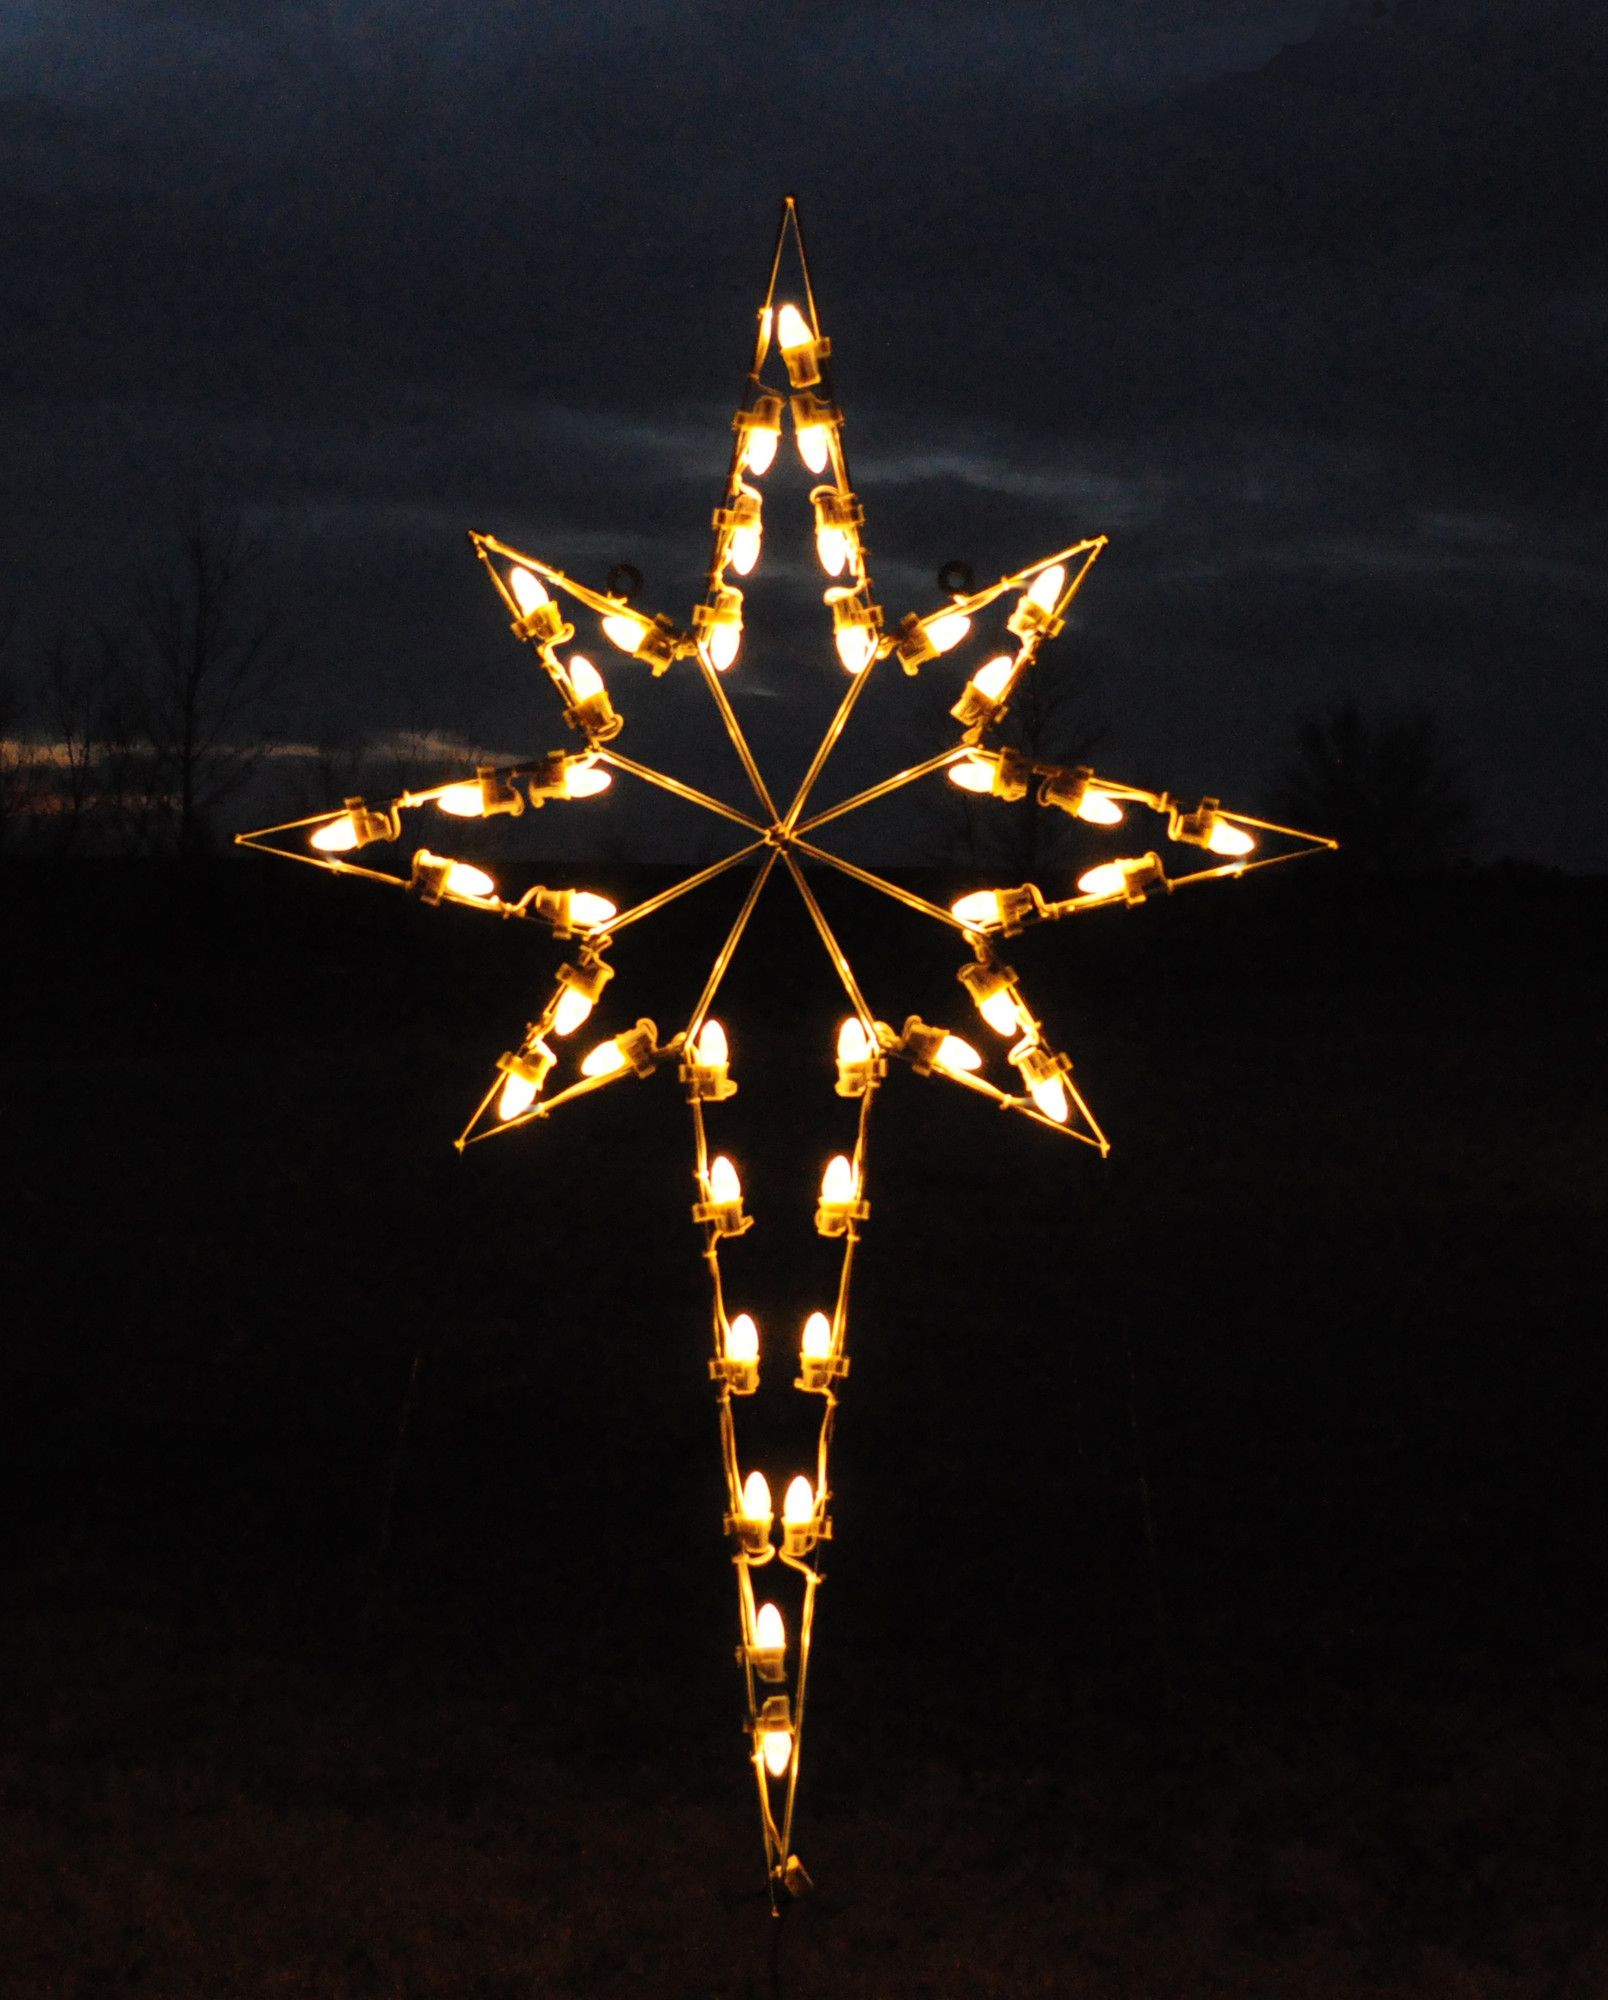 star christmas lights - Google Search | WF Icon Research ...